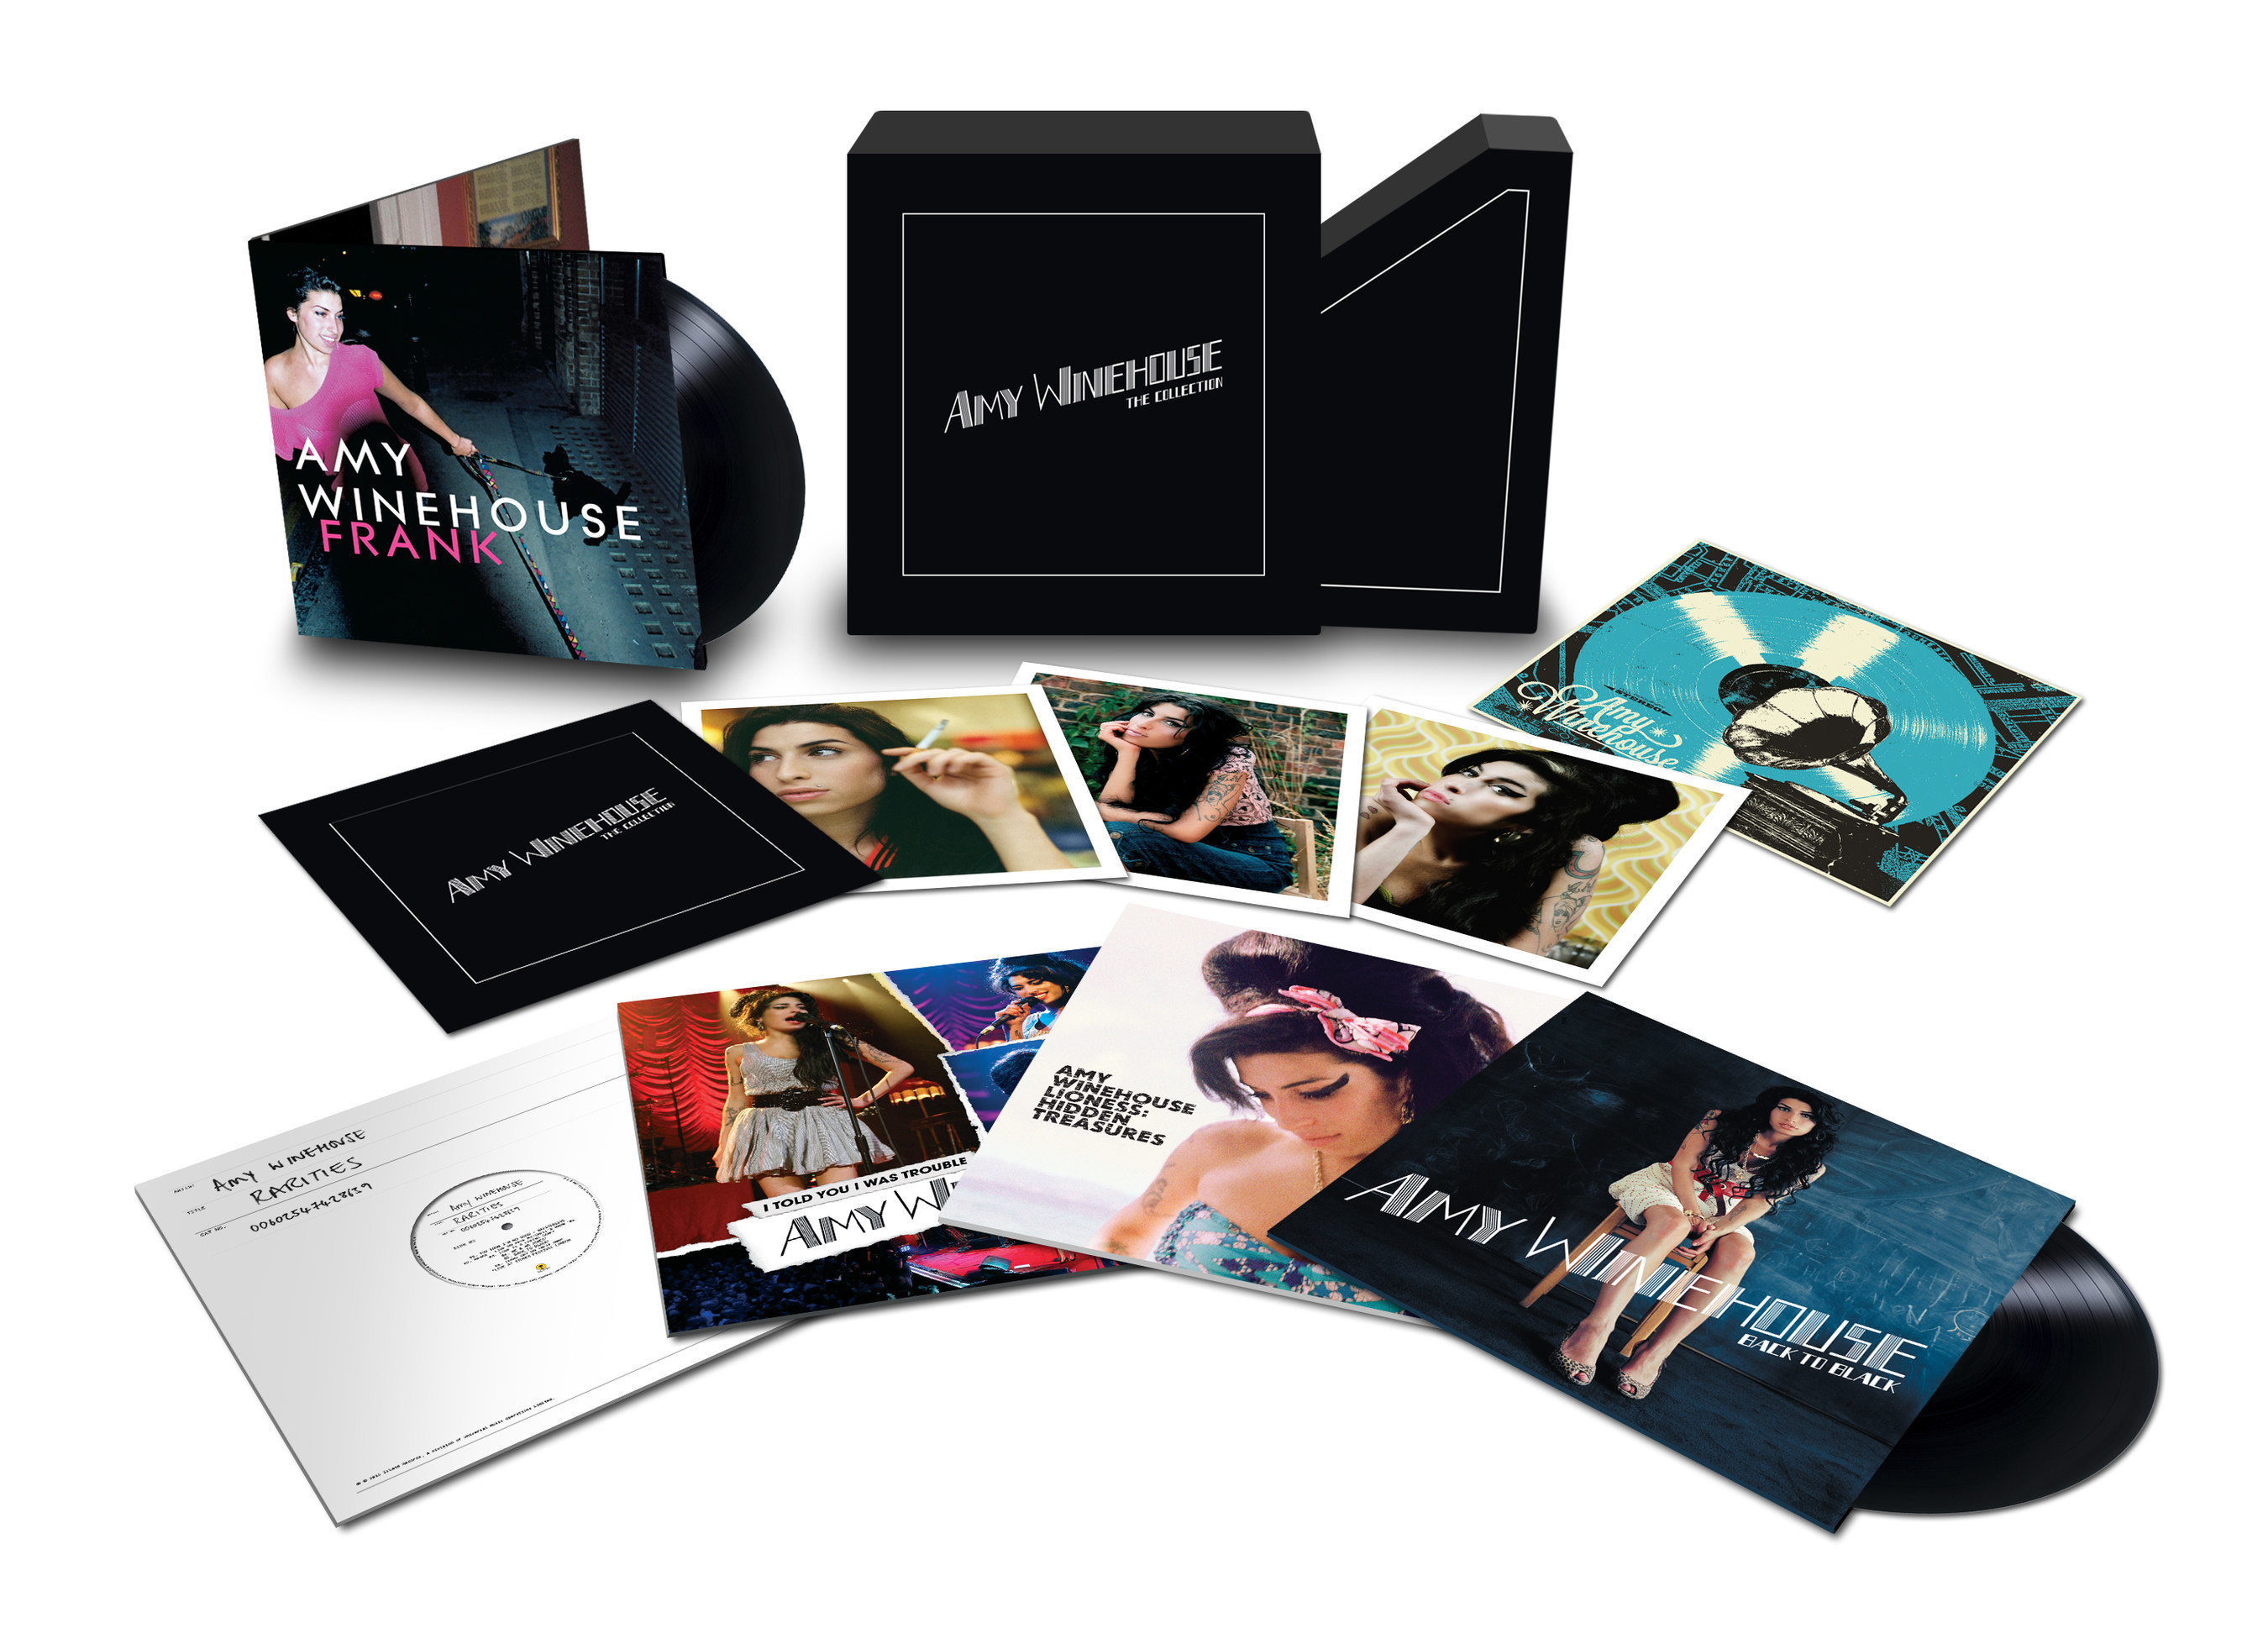 Amy Winehouse - The Collection box set, to be released on December 11th, is a lovingly assembled and beautifully packaged collection. Each LP will be pressed onto 180-gram vinyl and the box will also include a bespoke litho print and an exclusive set of photographs taken from the commissioned photo sessions for Frank and Back To Black.